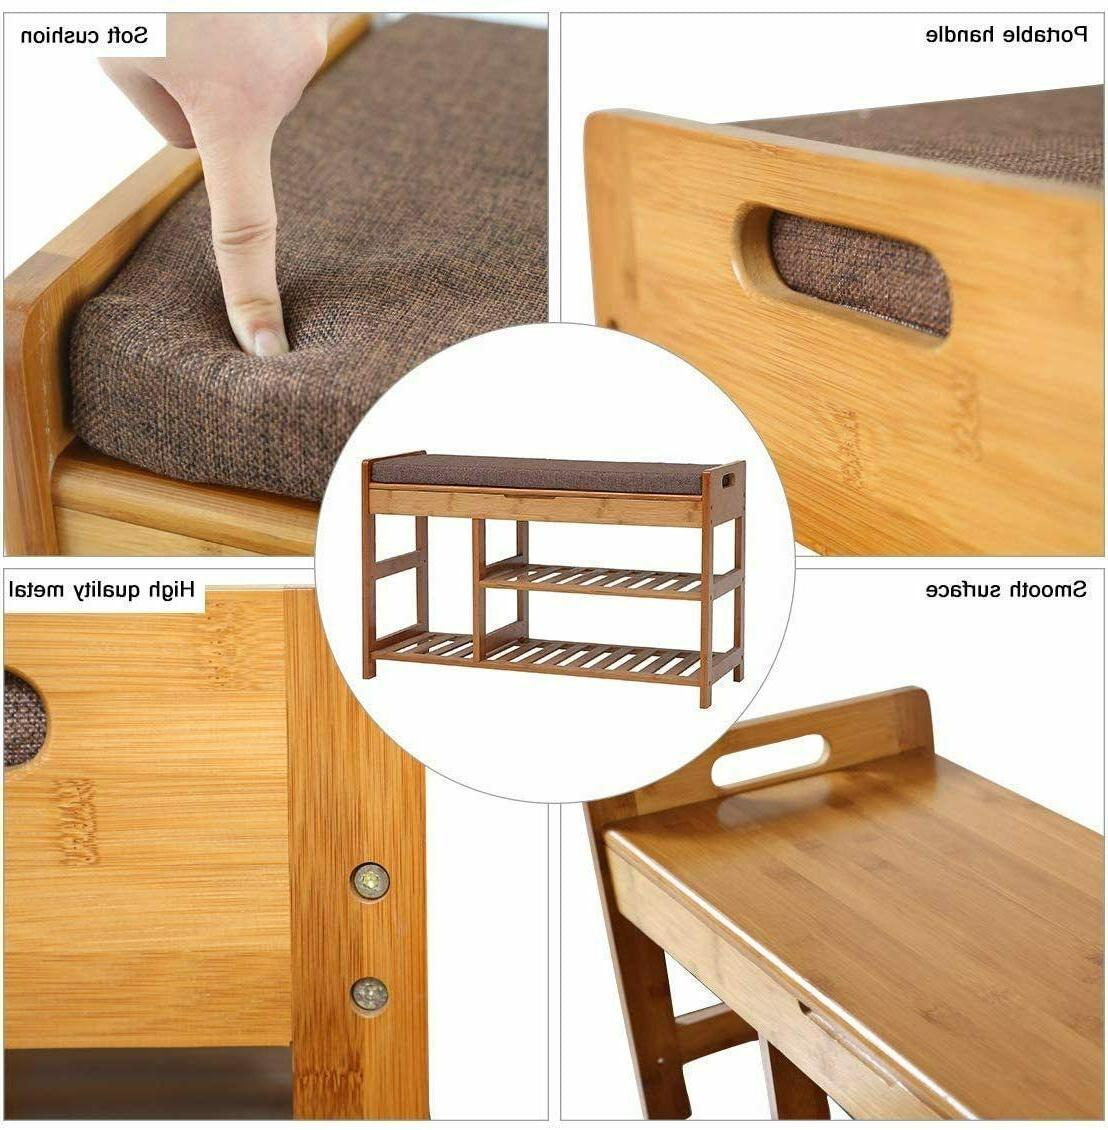 C&AHOME Bamboo Rack Bench,